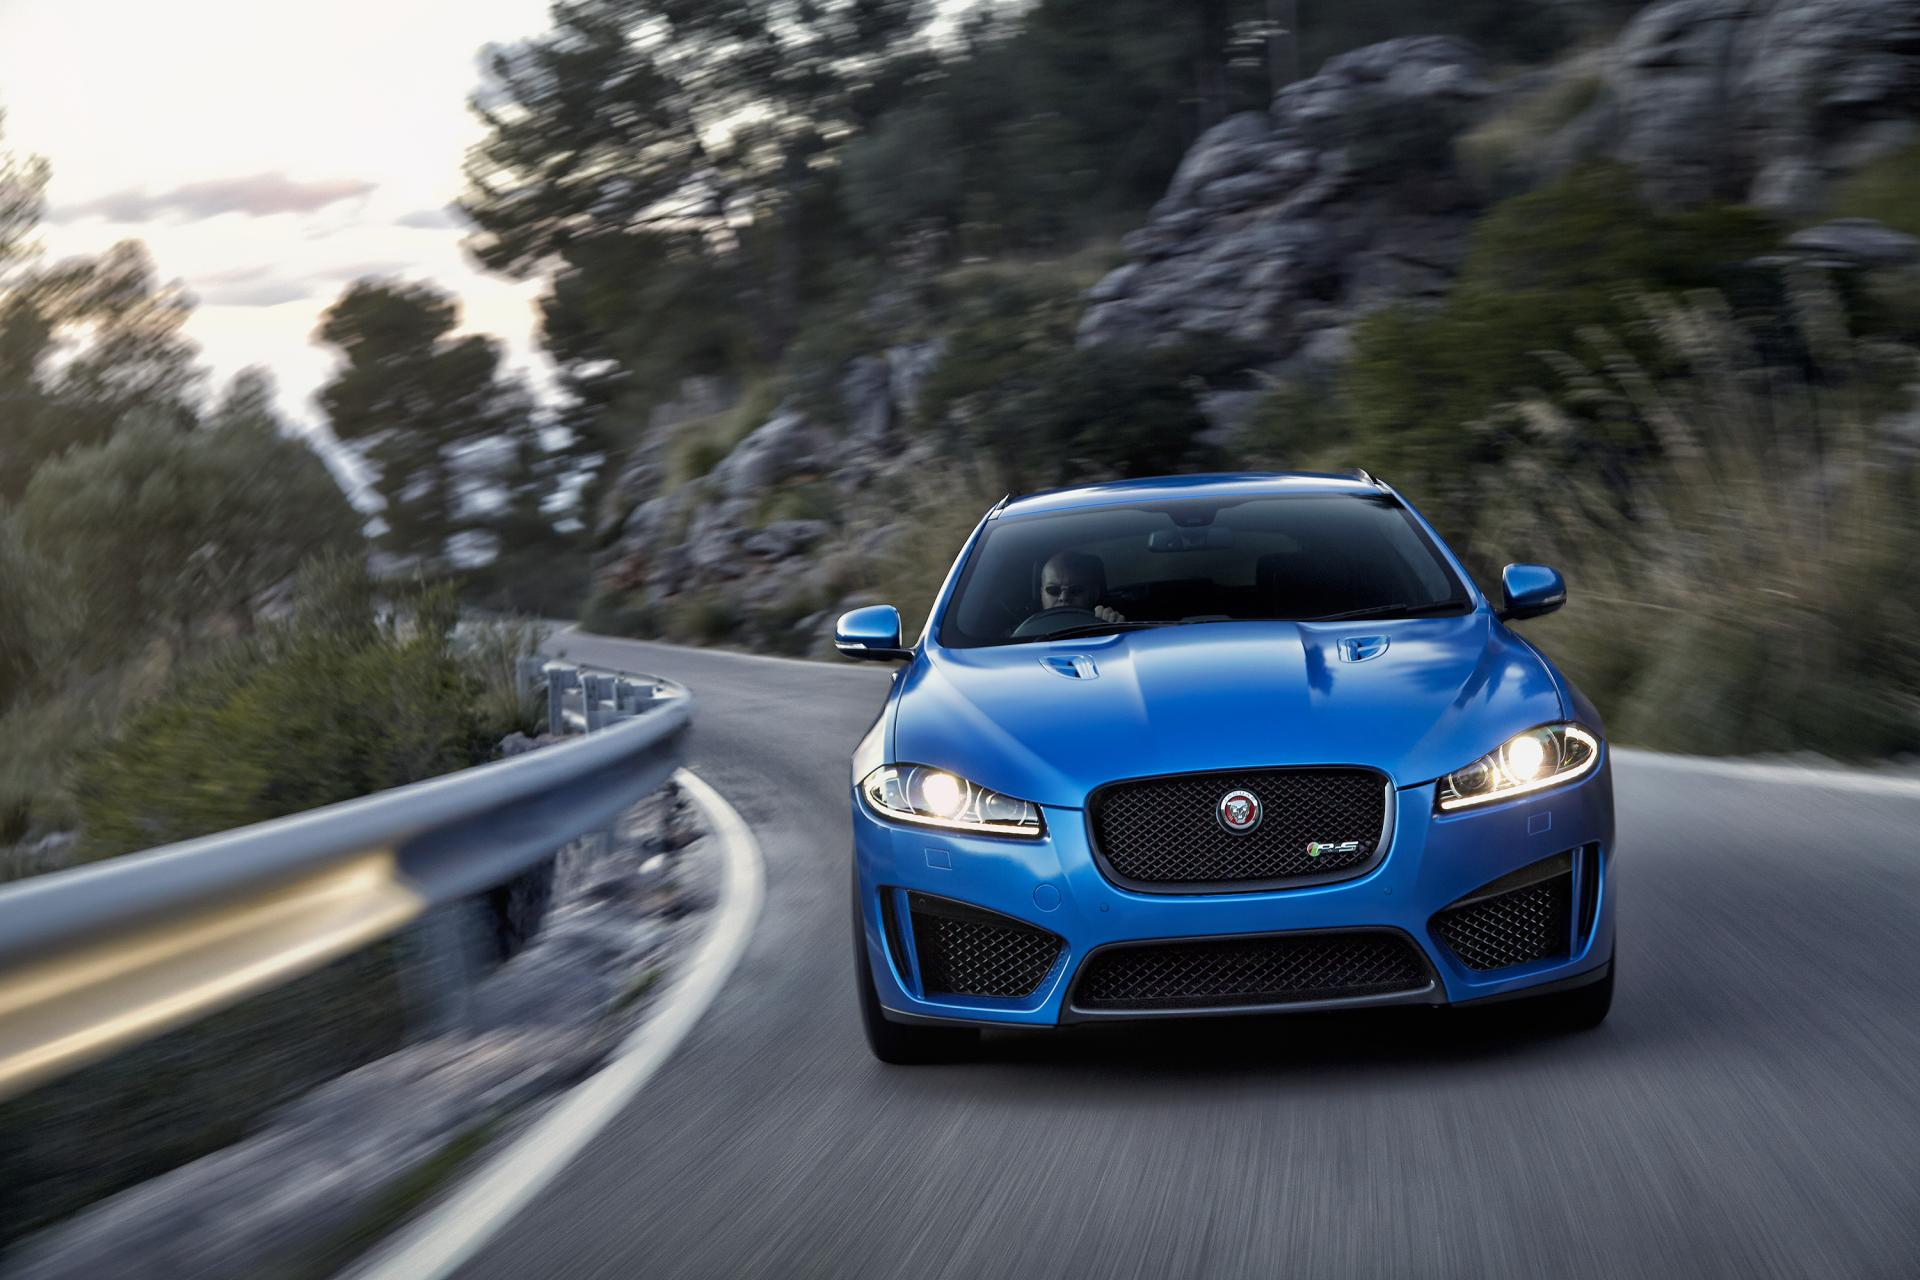 sport img xf truth jaguar the sedan related review cars about